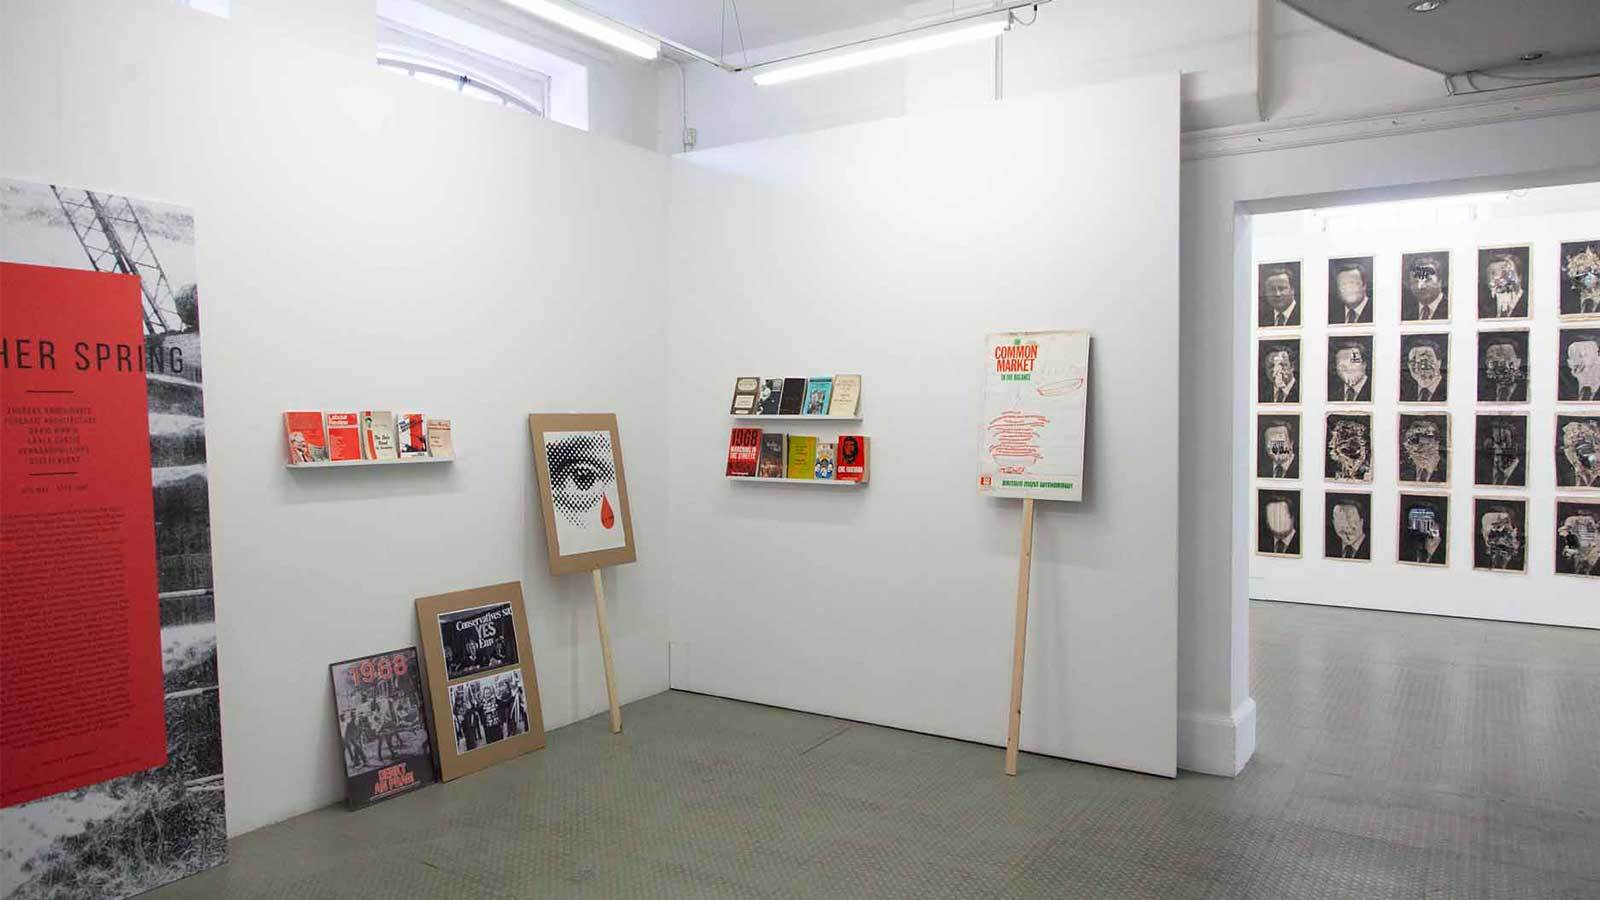 Photograph of another spring exhibition at exeter phoenix's gallery